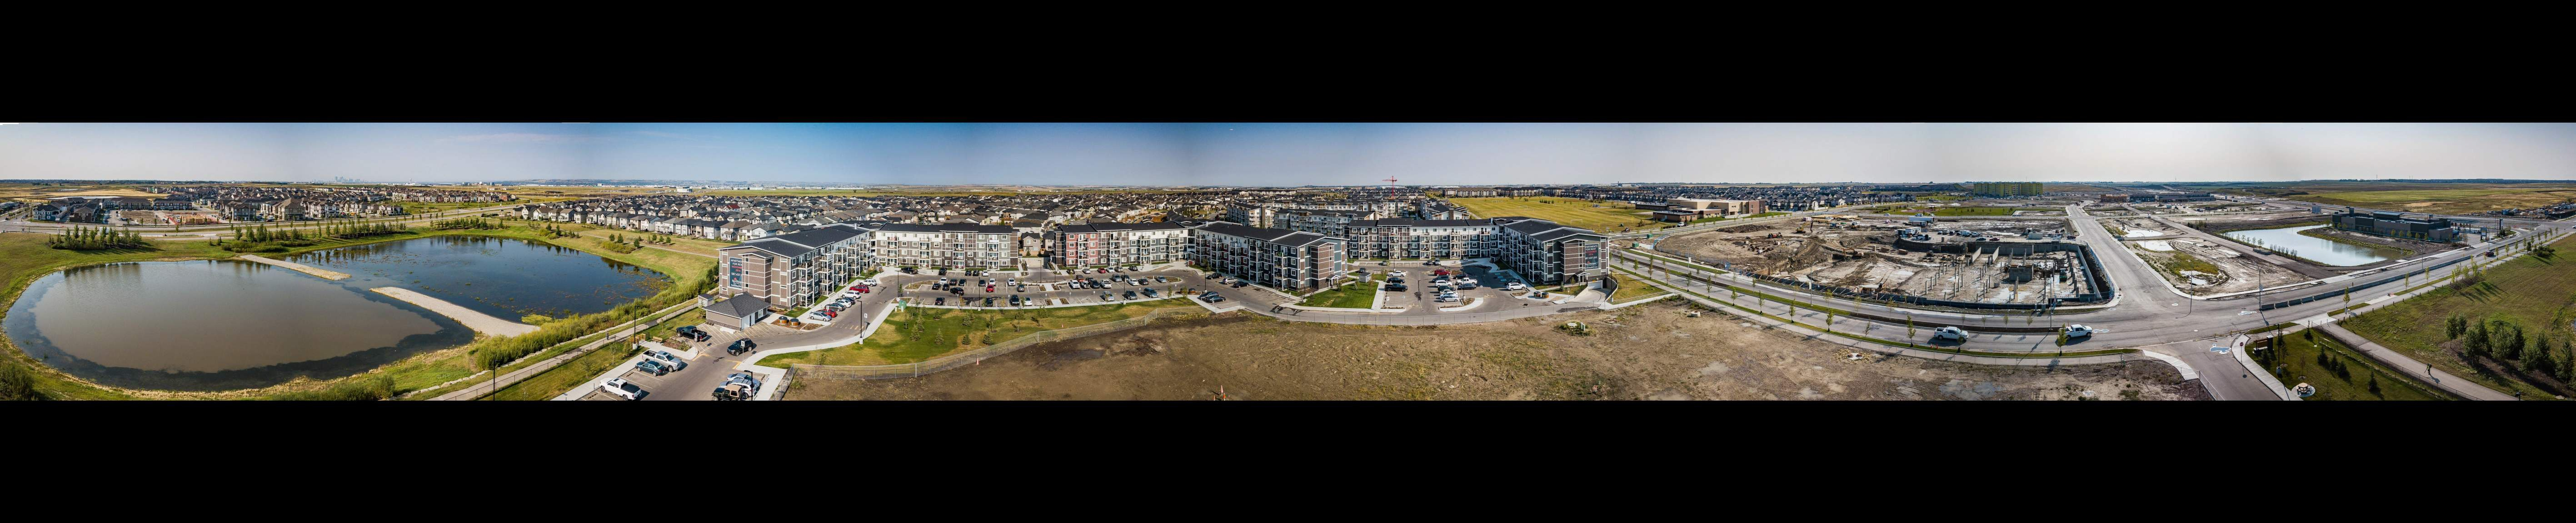 355 Skyview Ranch Drive NE in Calgary, AB is Now Available